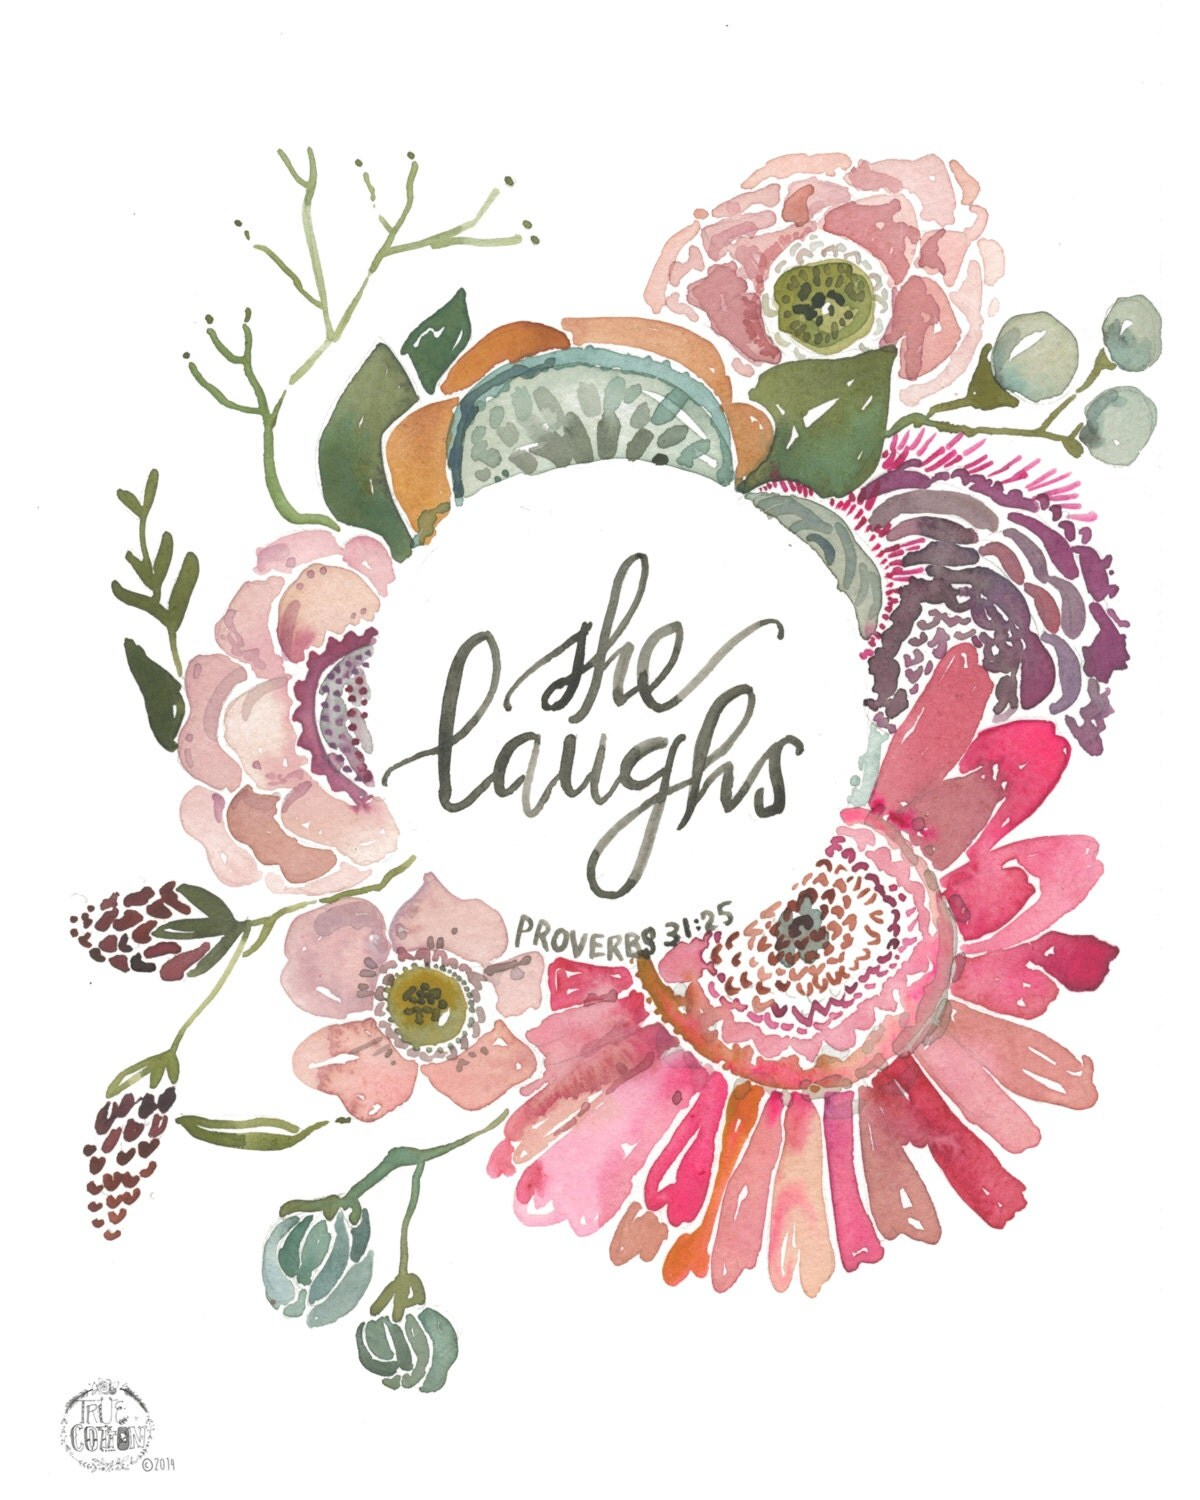 She Laughs Proverbs 31 25 Print By Truecotton On Etsy